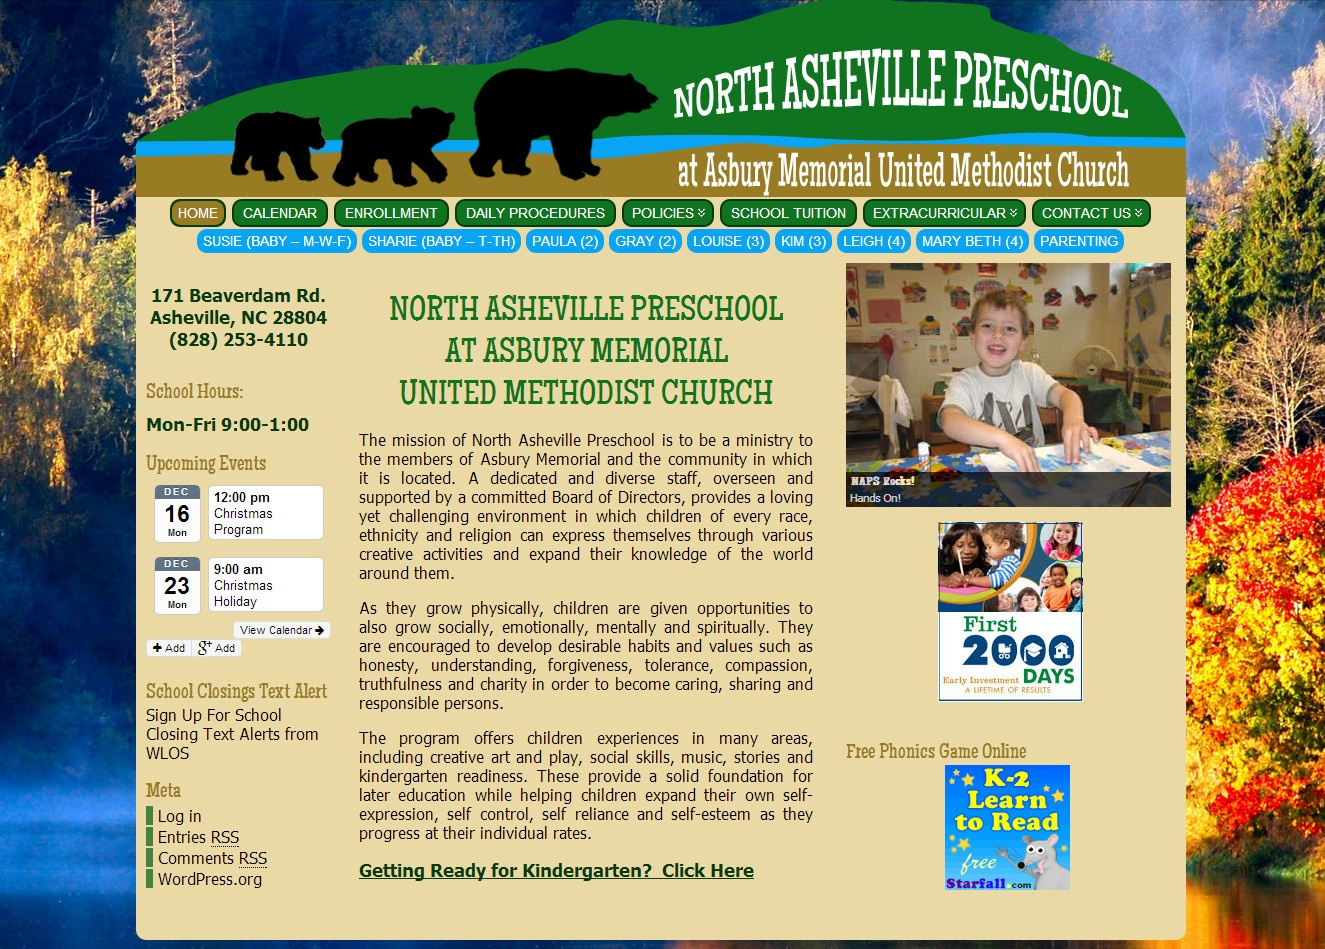 preschool website with calendar